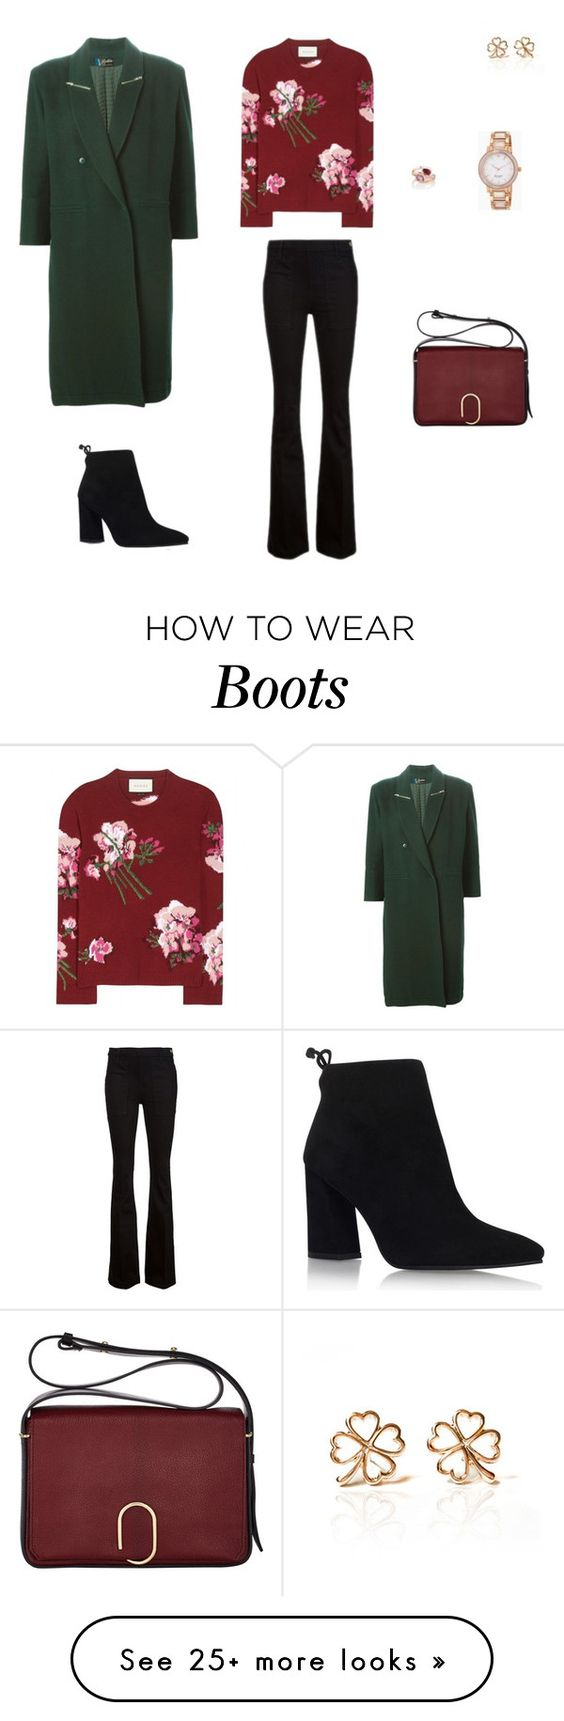 """Gucci"" by sebolita on Polyvore featuring Gucci, Frame Denim, Stuart Weitzman, 3.1 Phillip Lim, Kate Spade, Manja and Claude Montana"